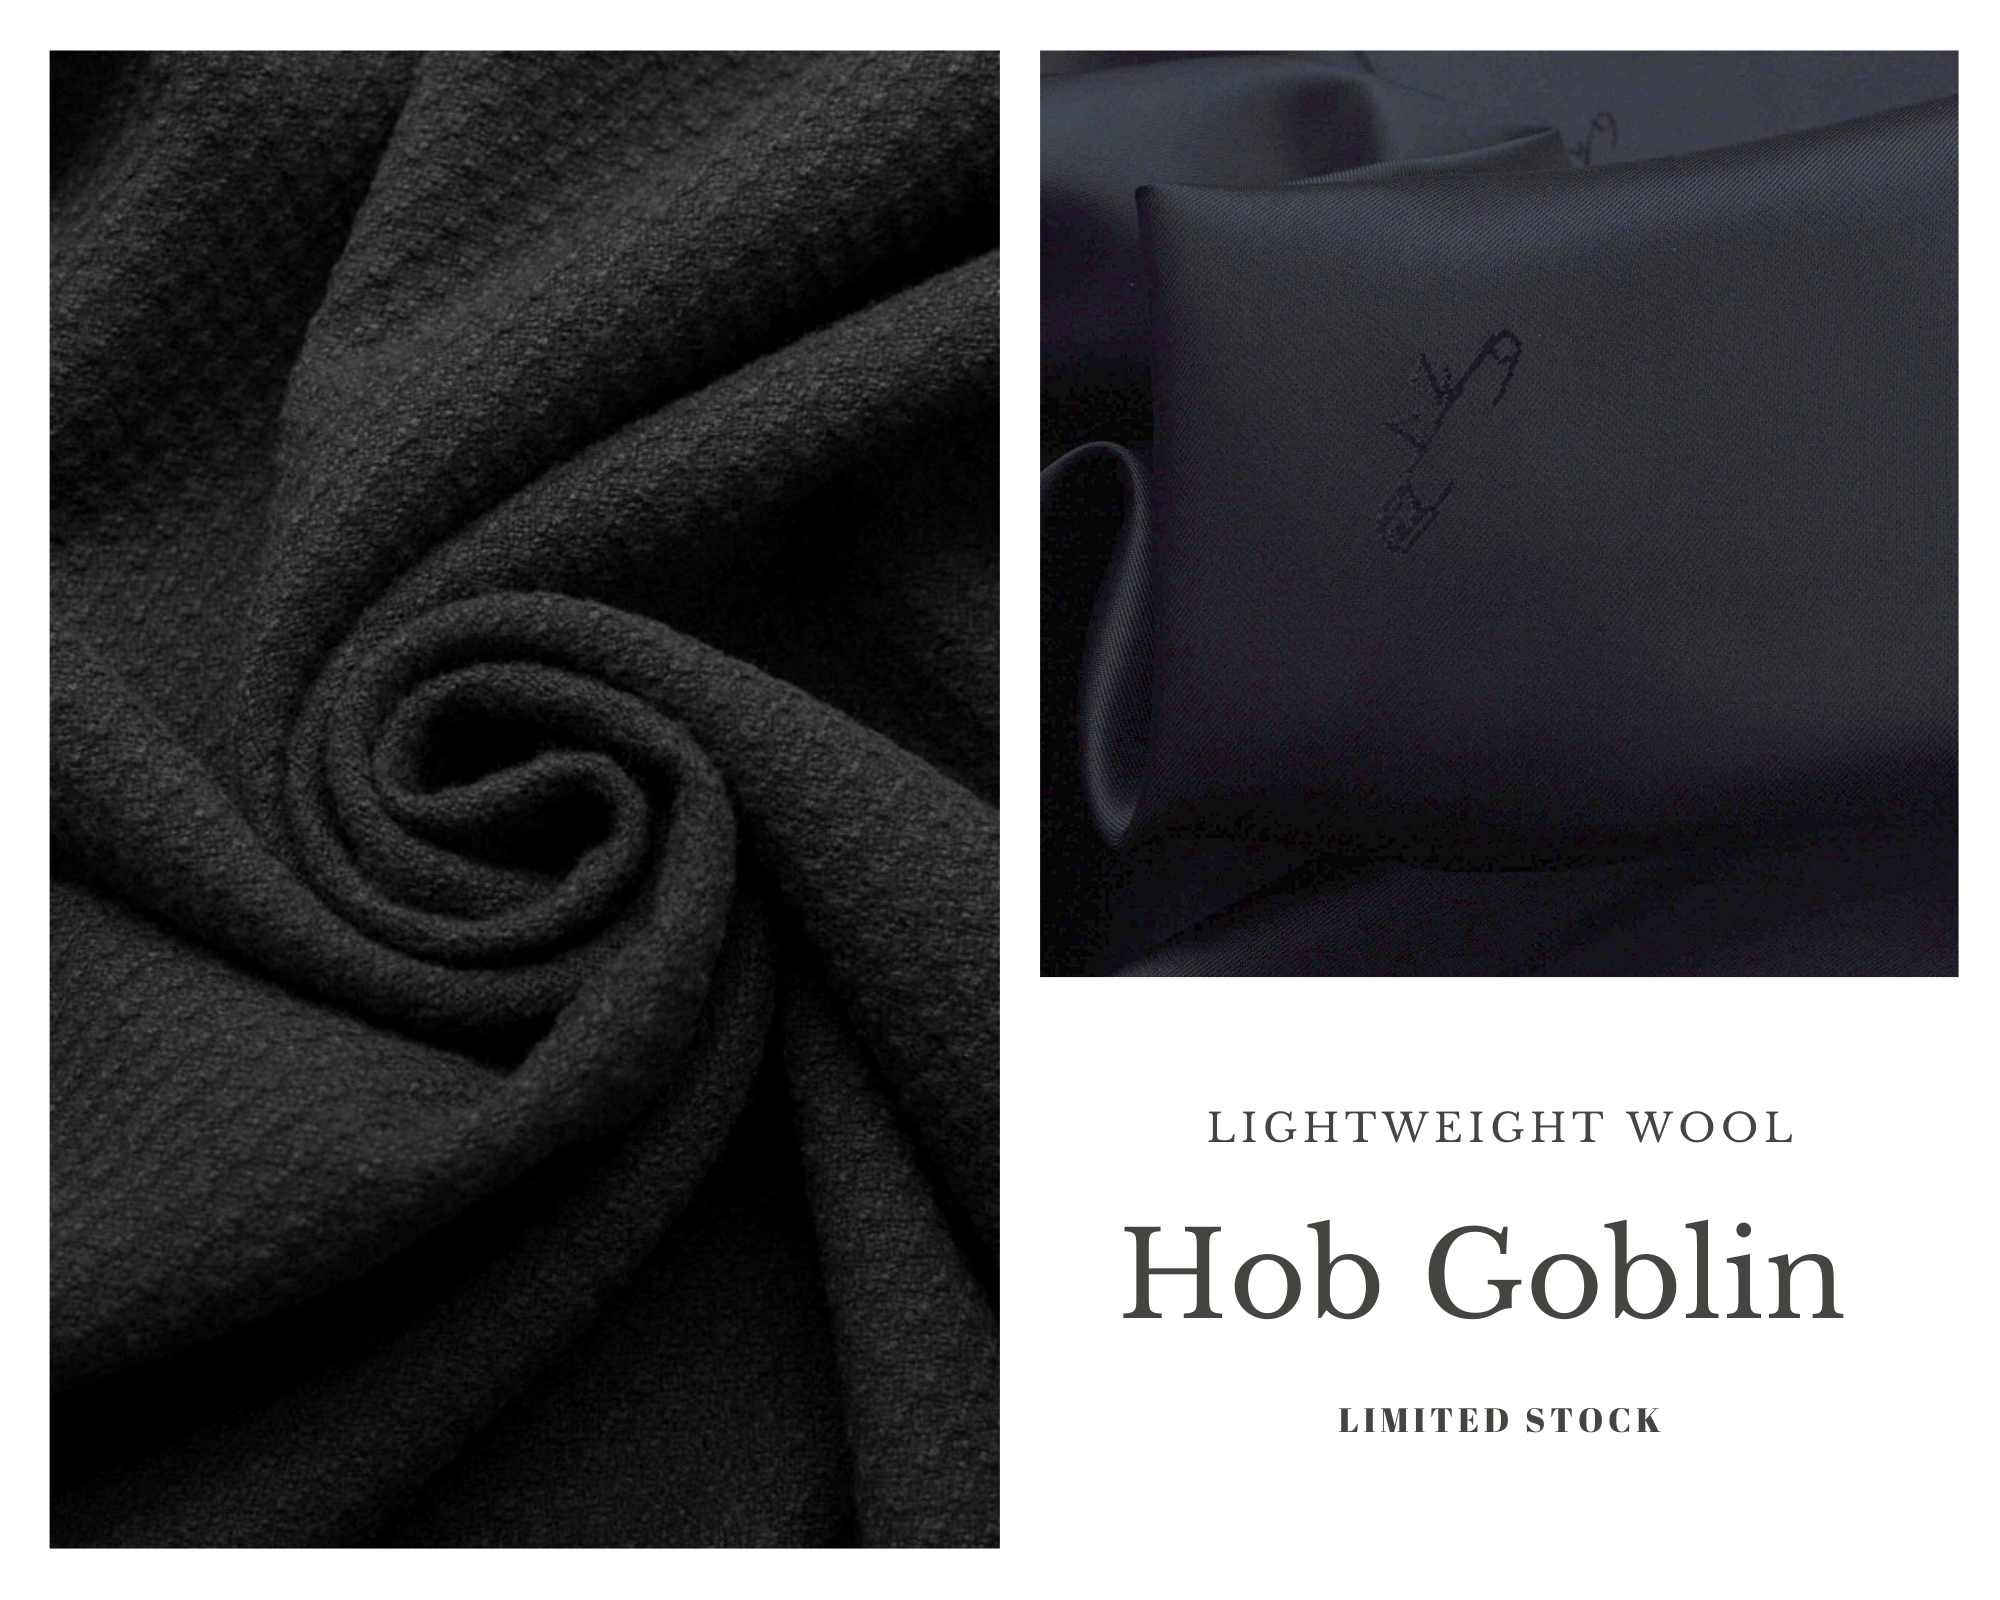 Coating Fabrics - Product Hob Goblin - Black textured coating